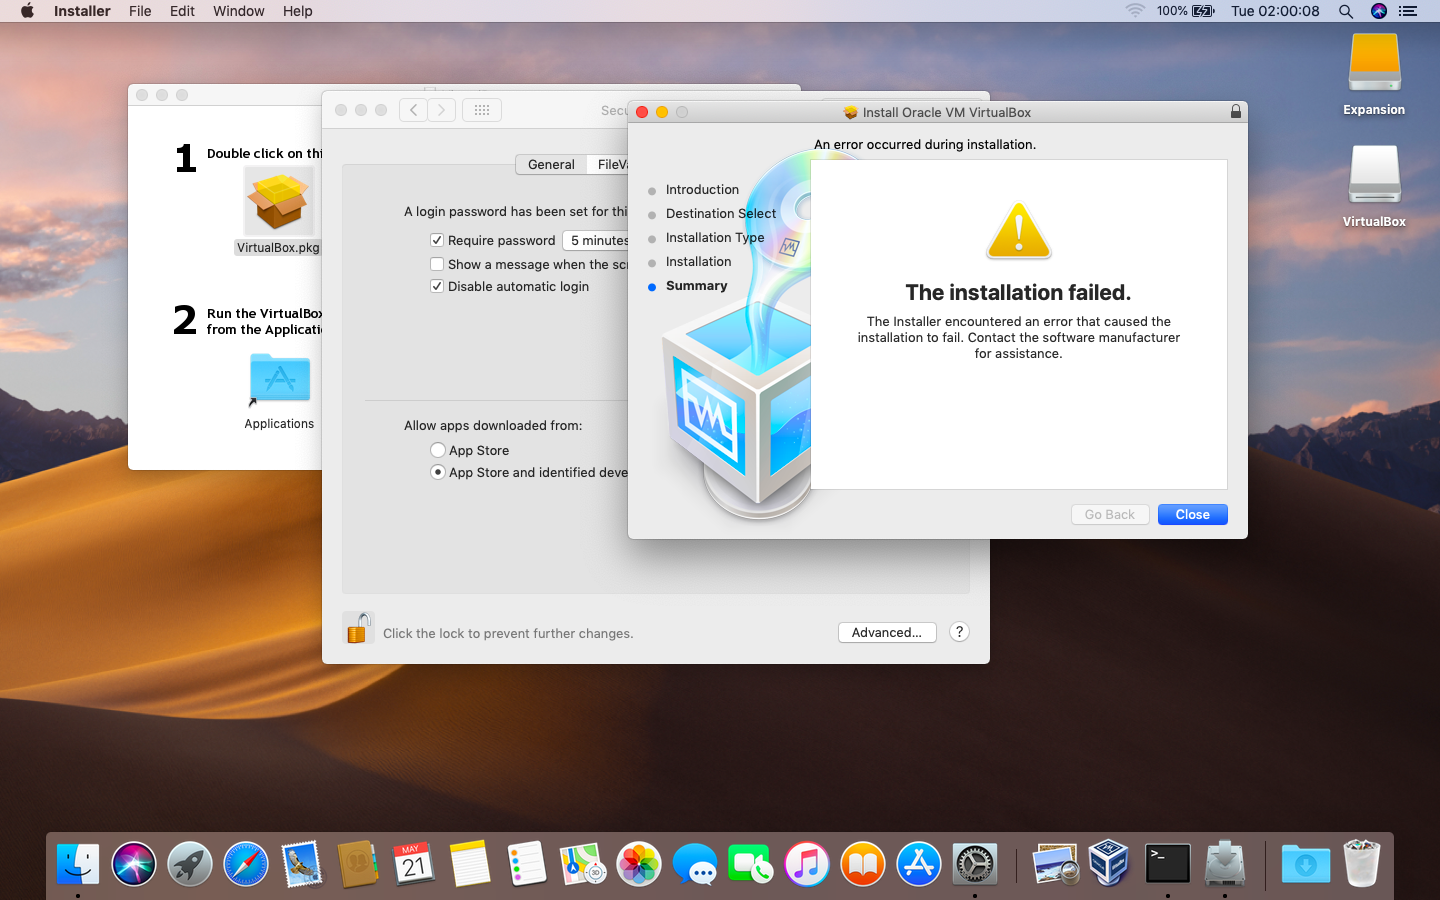 Unable to run Virtualbox after updating t… - Apple Community